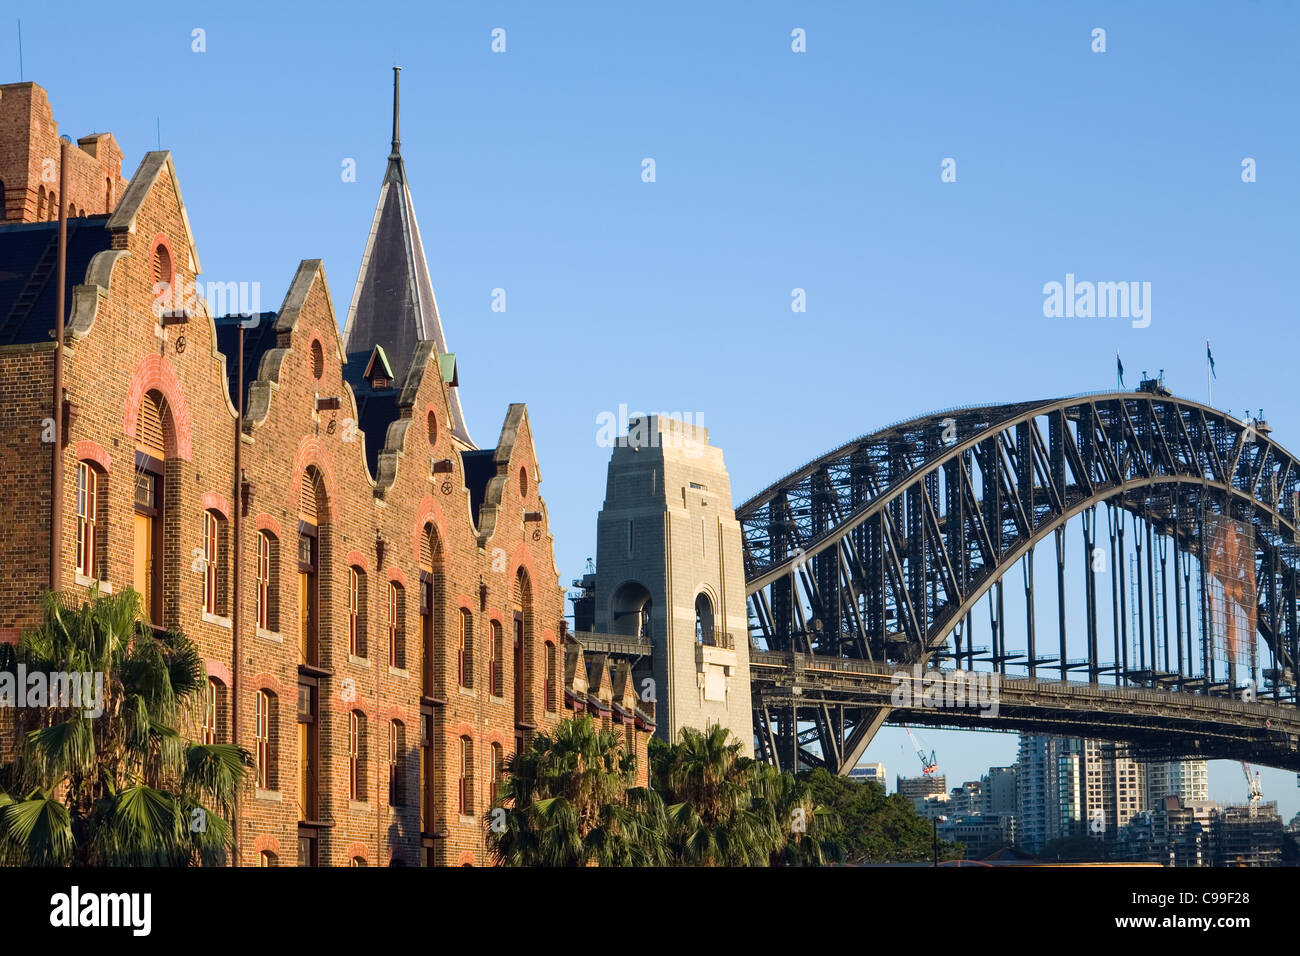 Die Architektur der Australasian Steam Navigation Co. Gebäude und Harbour Bridge.  Sydney, New South Wales, Australien Stockfoto